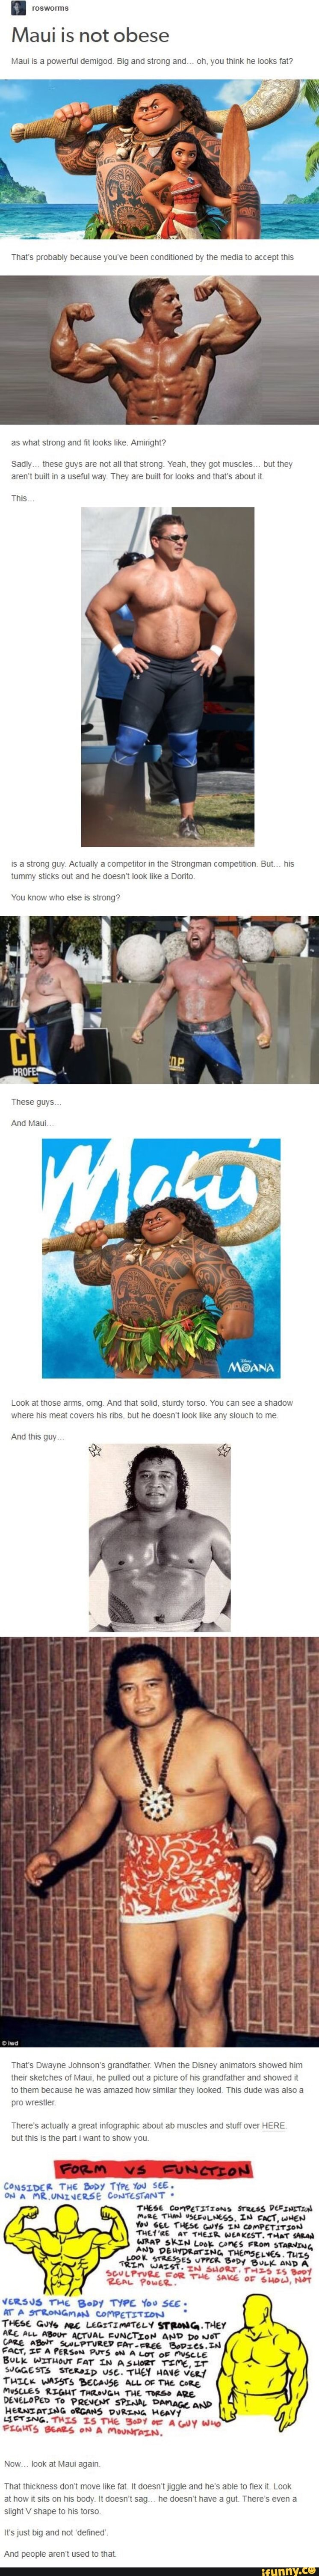 I rosworms Maui is not obese Maui IS a powerful aemlgod Big